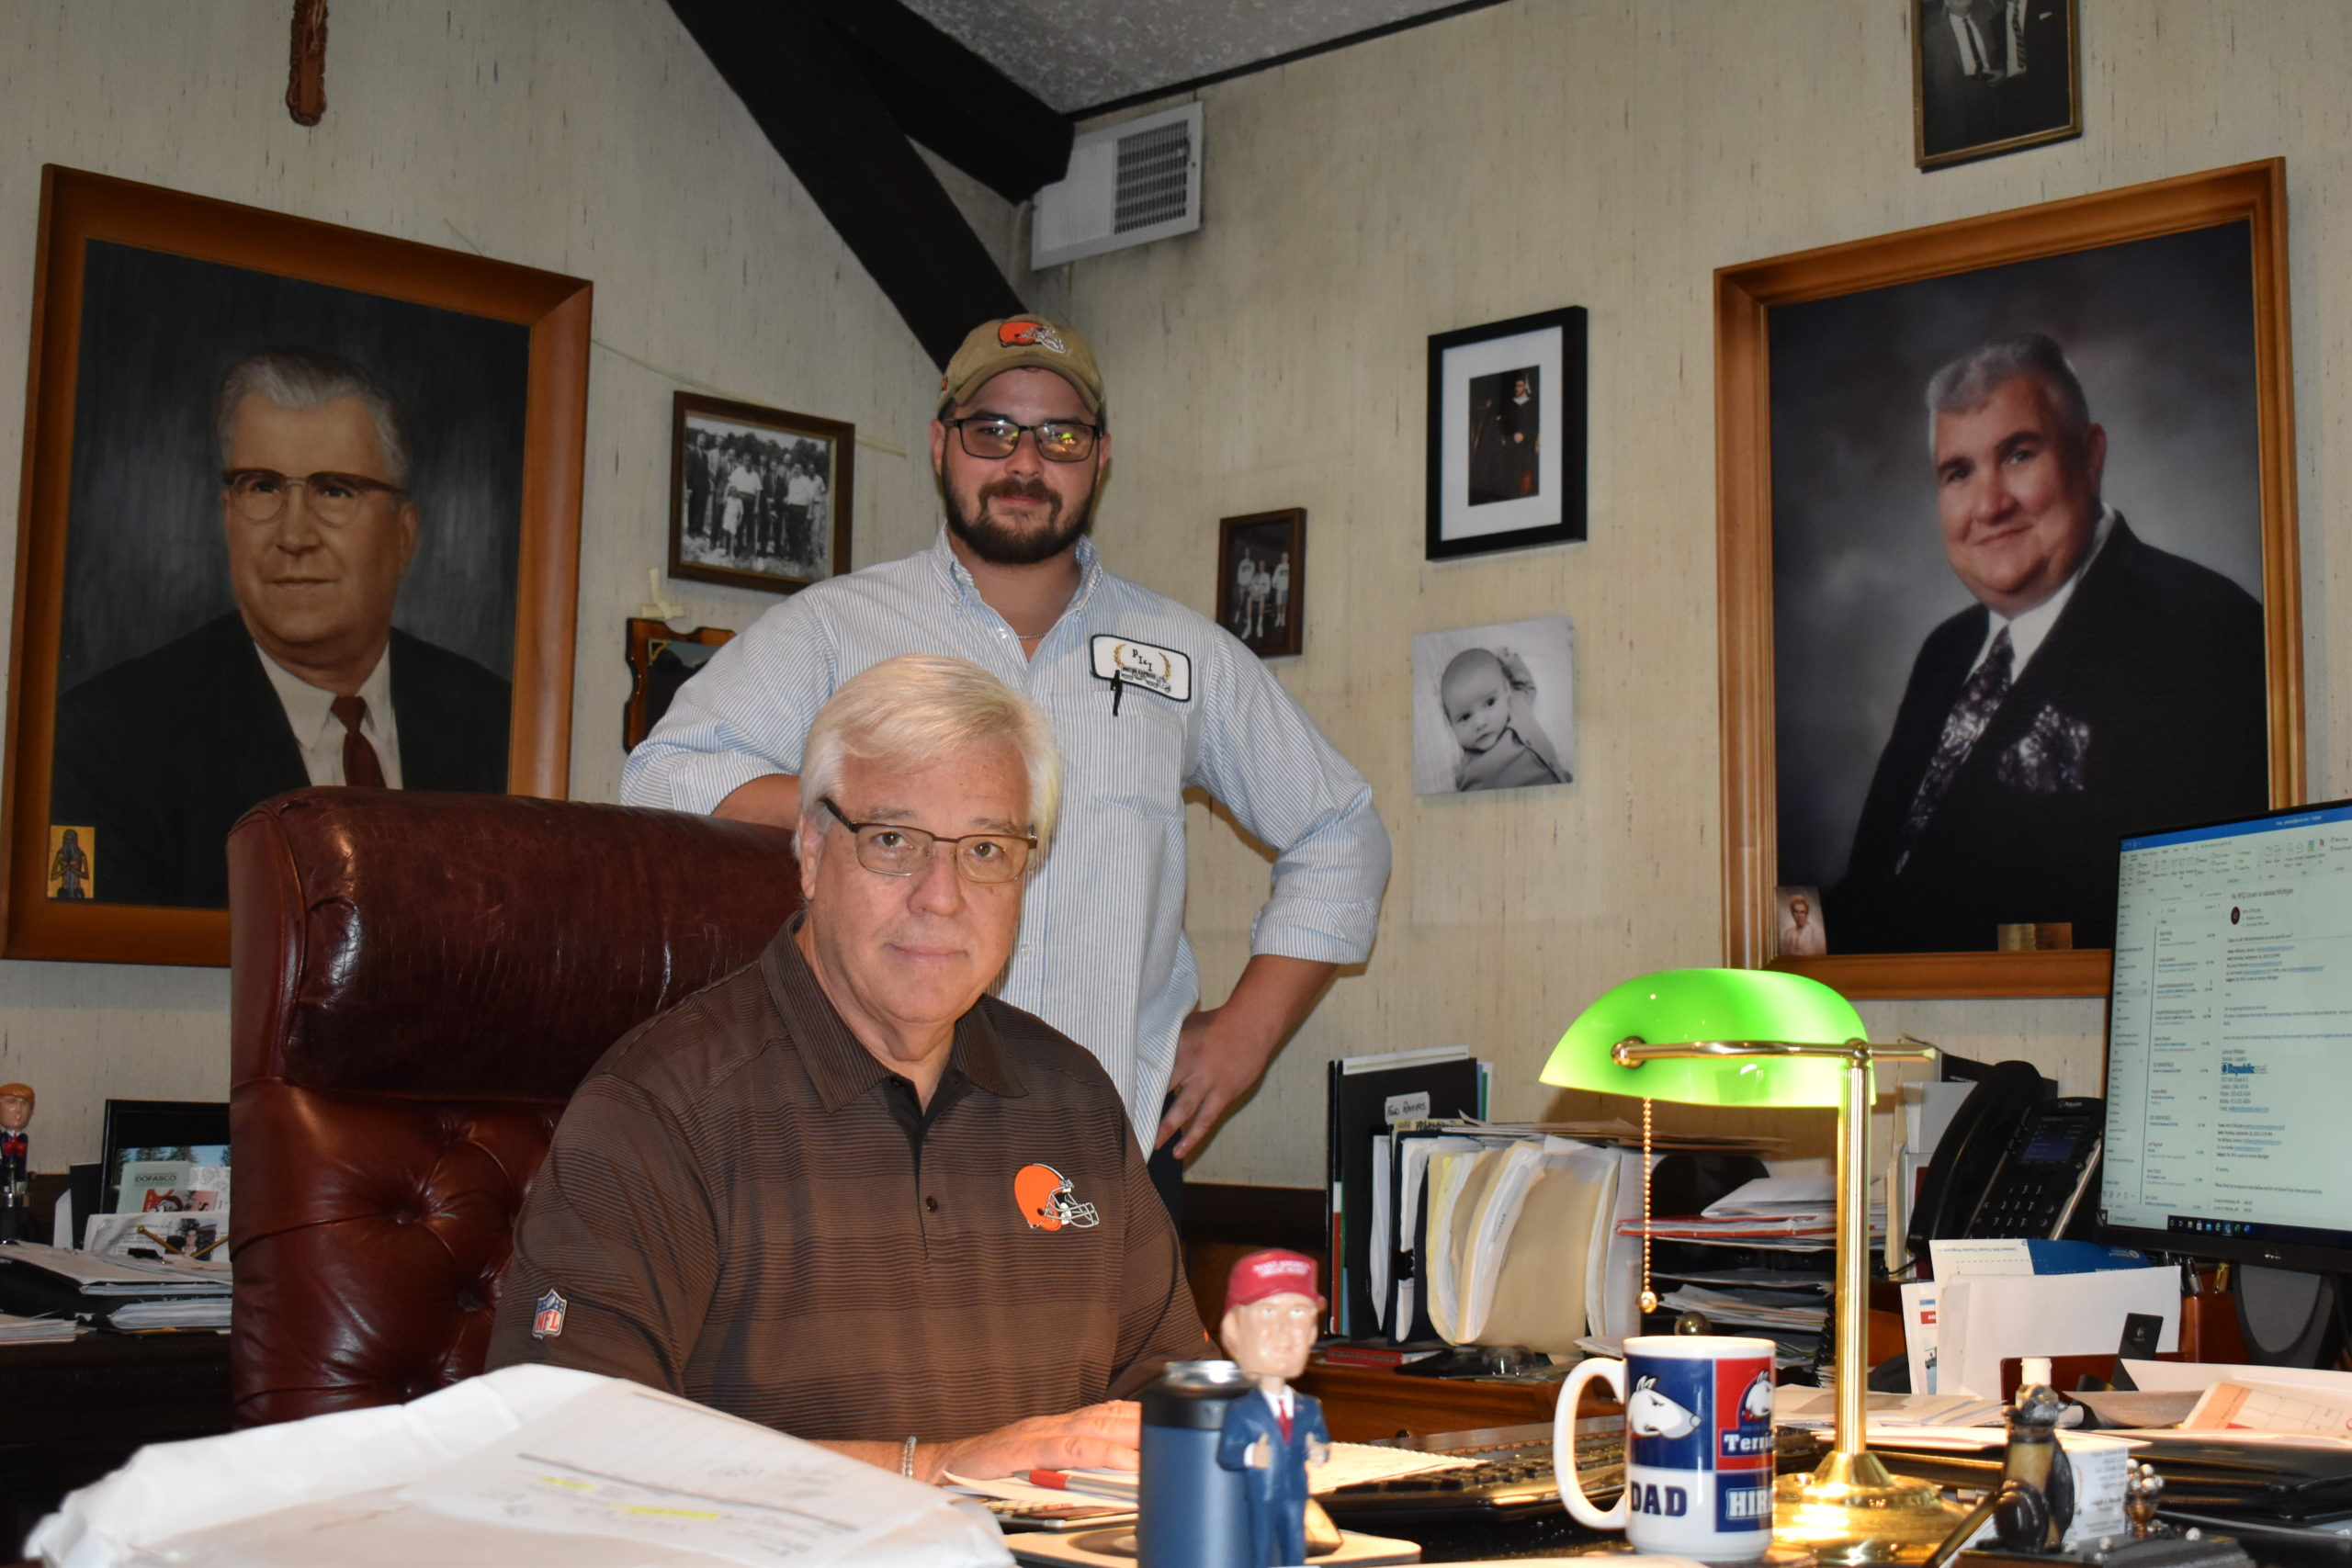 Joe Kerola, president and CEO of PI&I Motor Express, sits at his desk with his son, Jeremy, standing behind him. The picture at left is Kerola's grandfather, also named Joe, who founded the company, and at right is John Kerola, the current CEO's father.